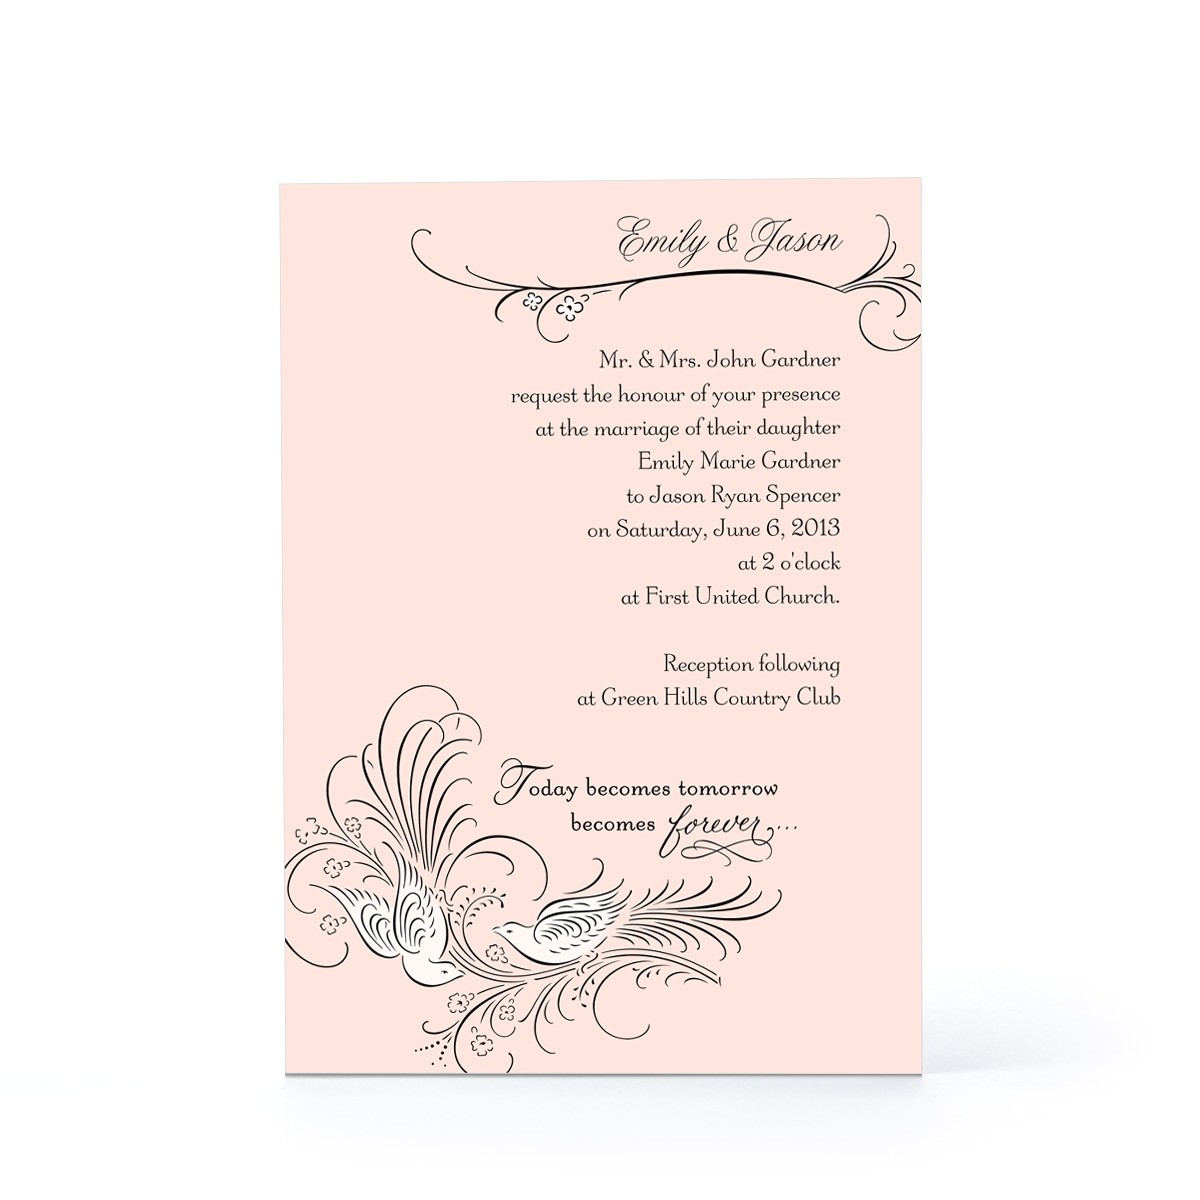 hallmark invitation cards 120230813